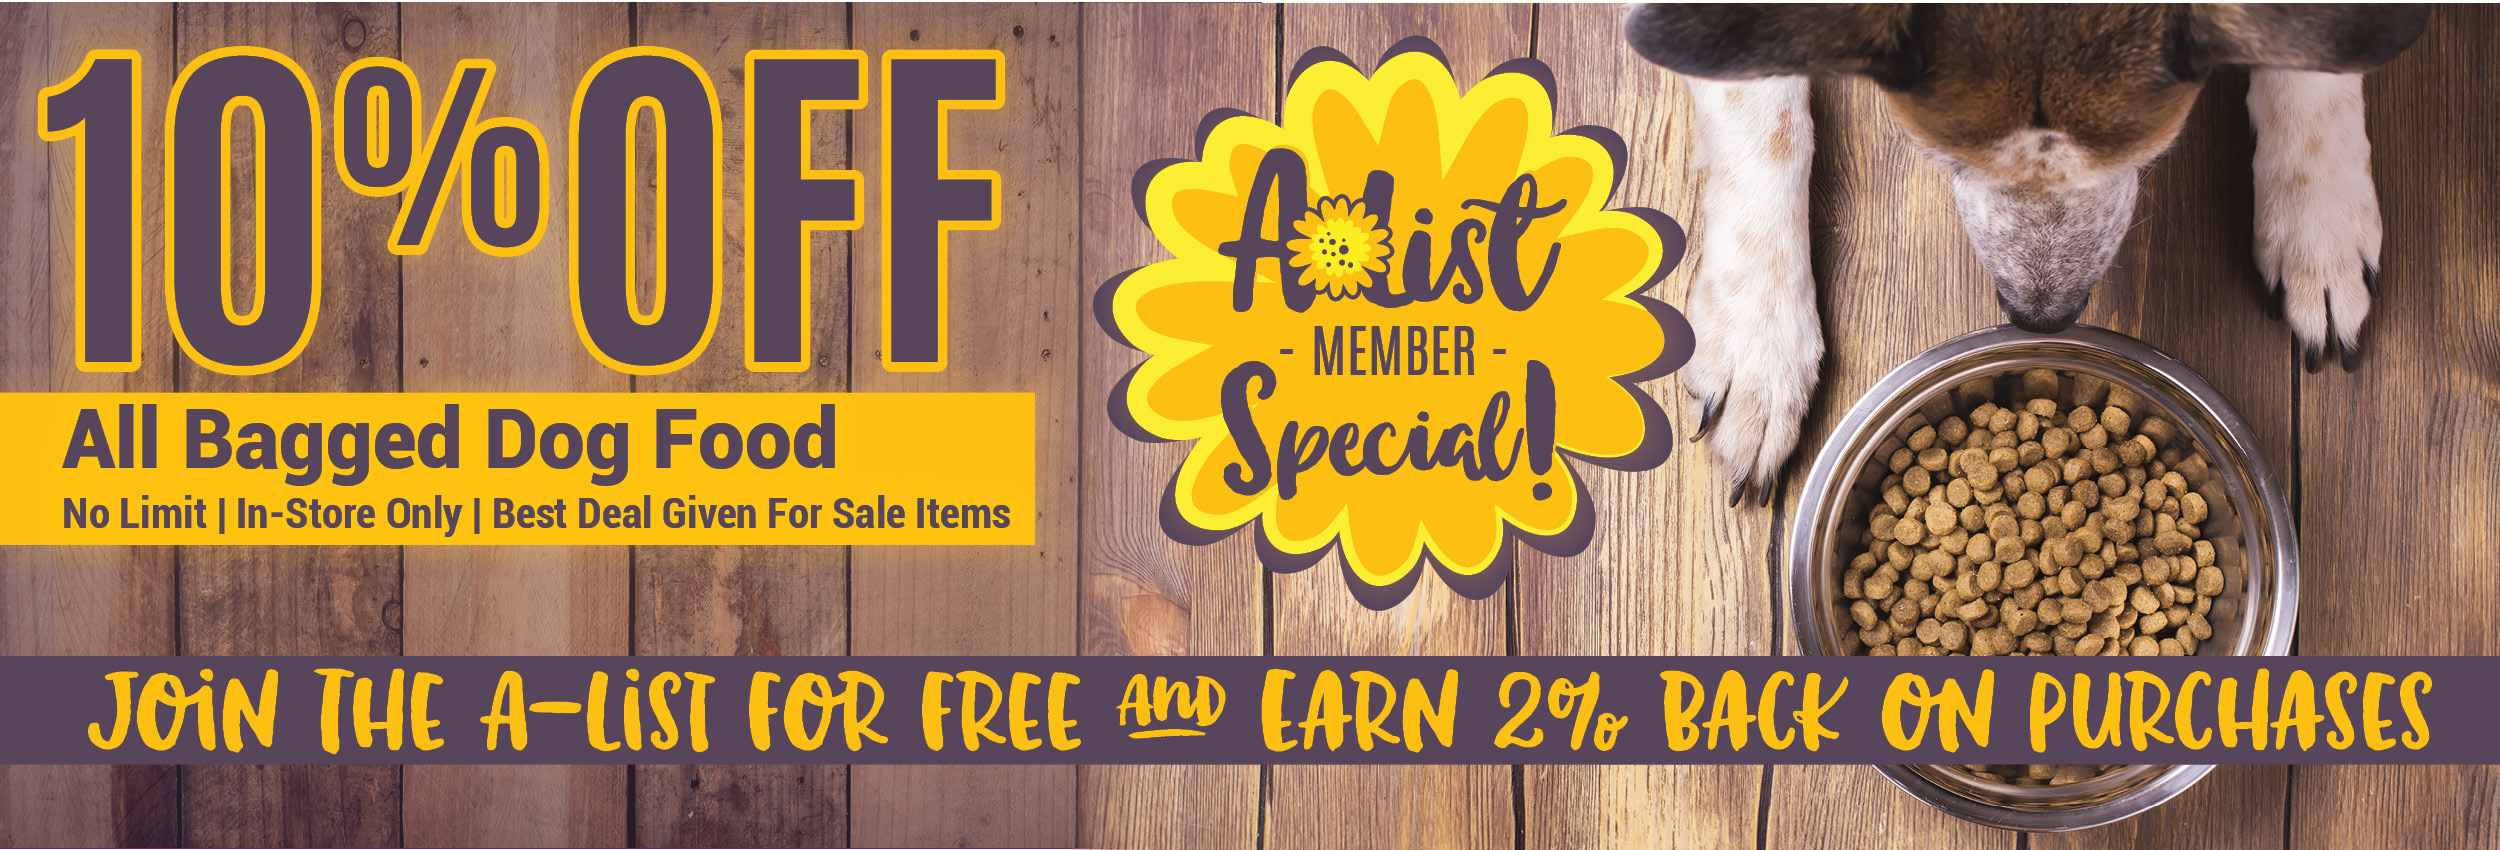 A-List Member Special 10% Off Bagged Dog Food